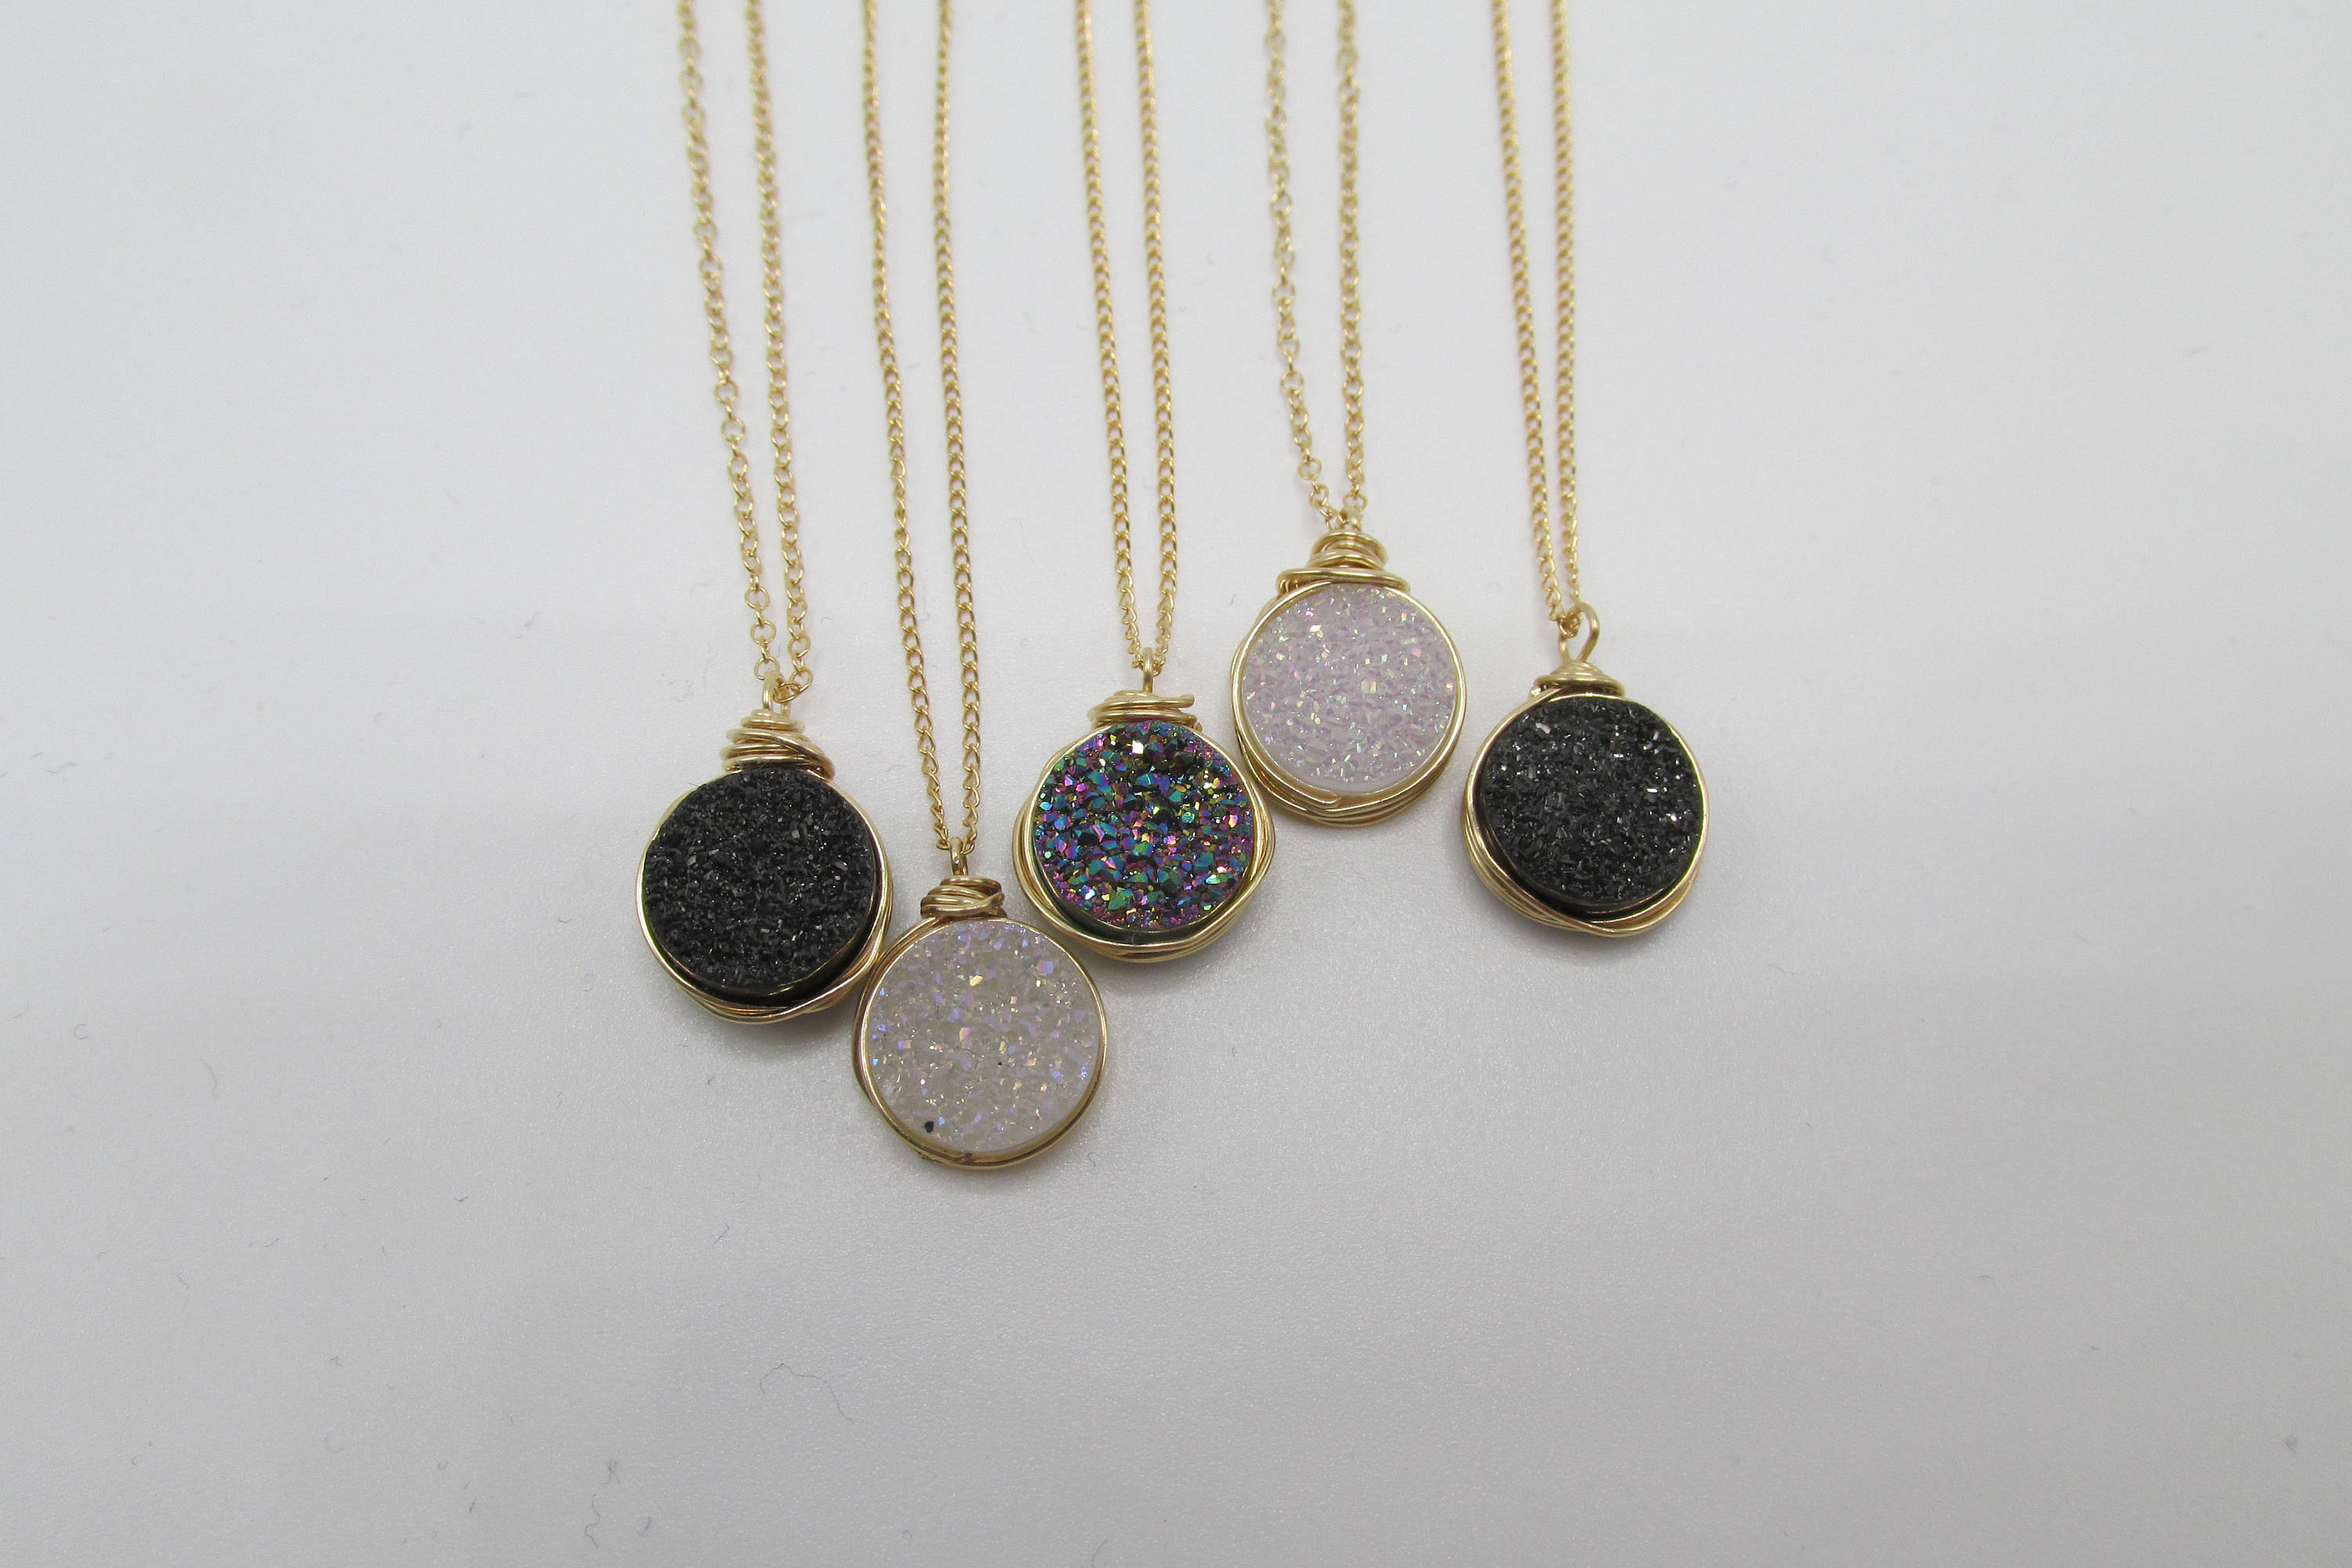 Circle Druzy Pendant Sparkly Crystal, Small Druzy Pendant, Wire Wrapped Druzy Necklace,small Druzy Necklace Throughout Recent Circle Of Sparkle Necklaces (View 12 of 25)